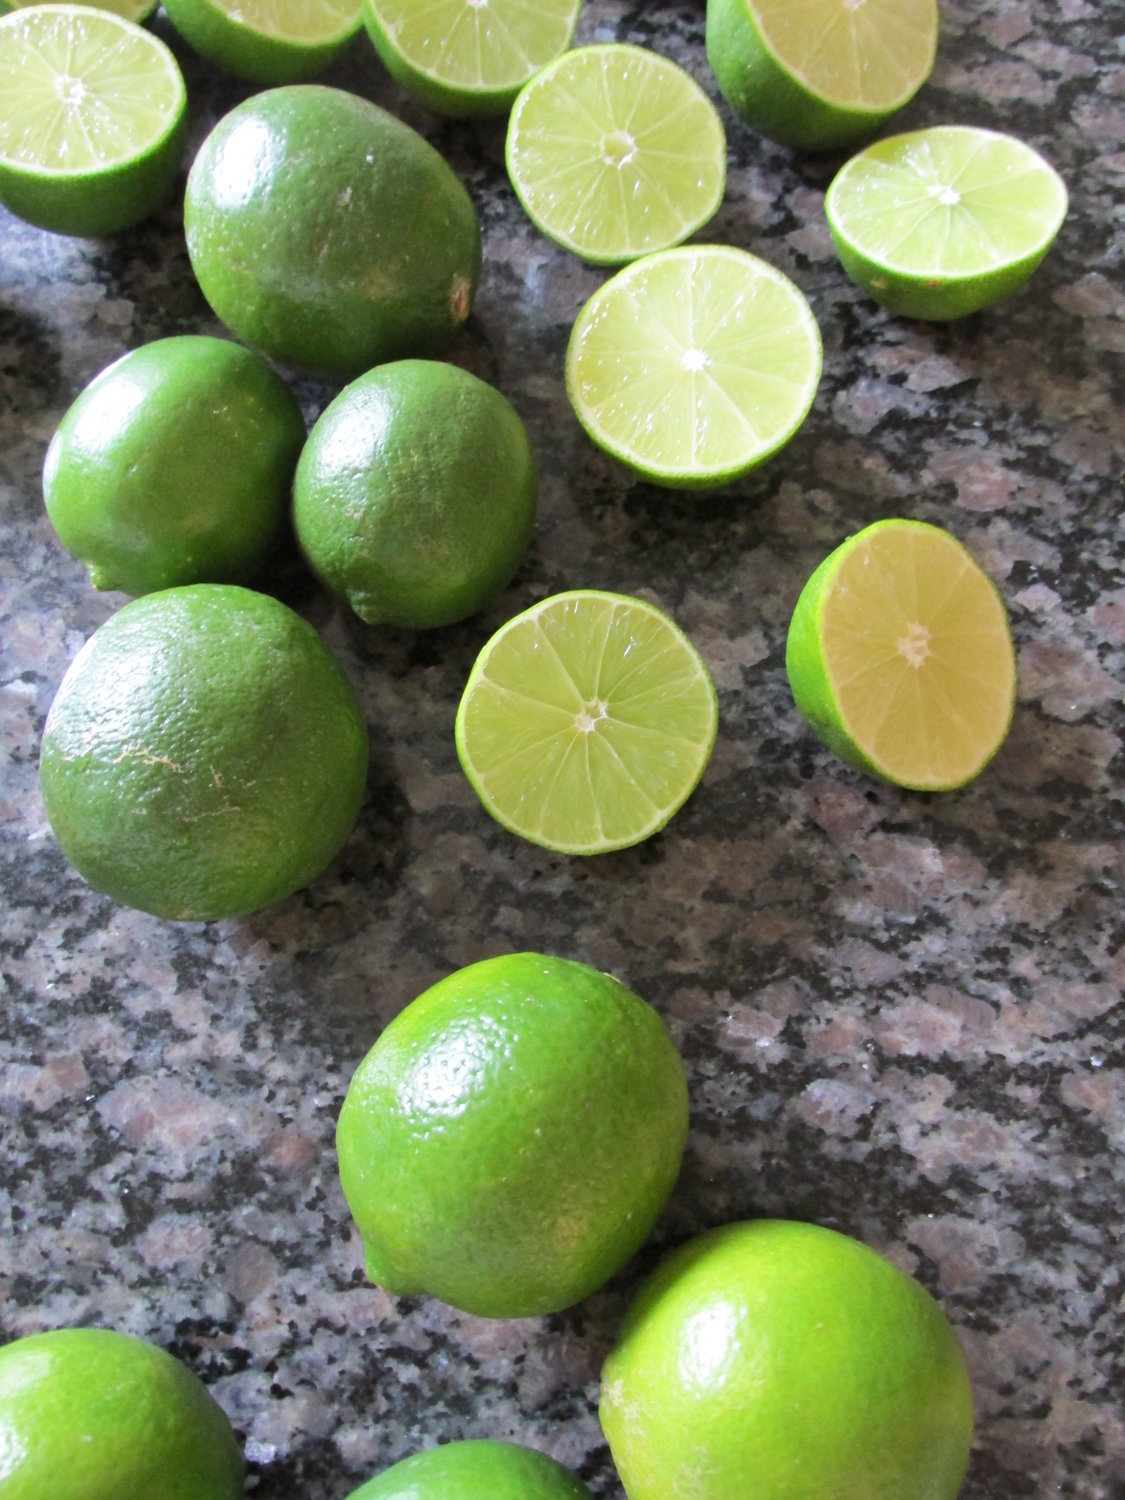 Juicing limes for margaritas.